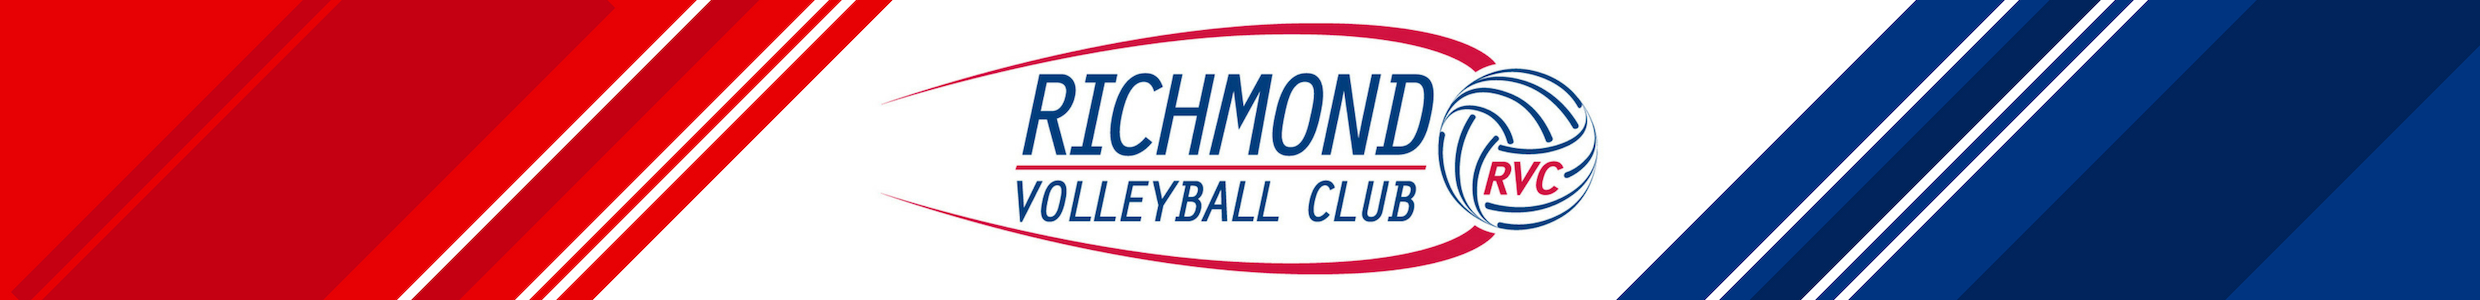 Richmond Volleyball Club logo banner